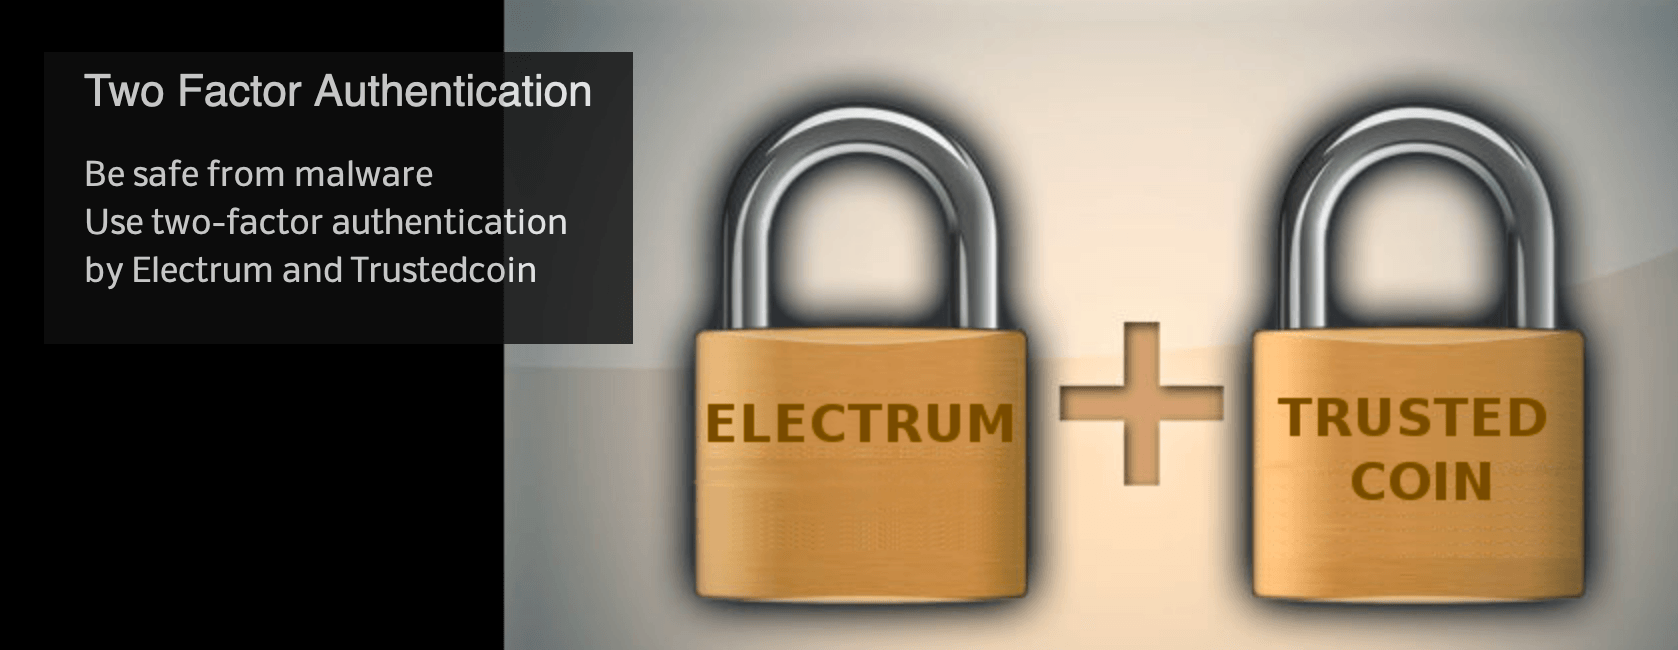 electrum wallet two factor authentication